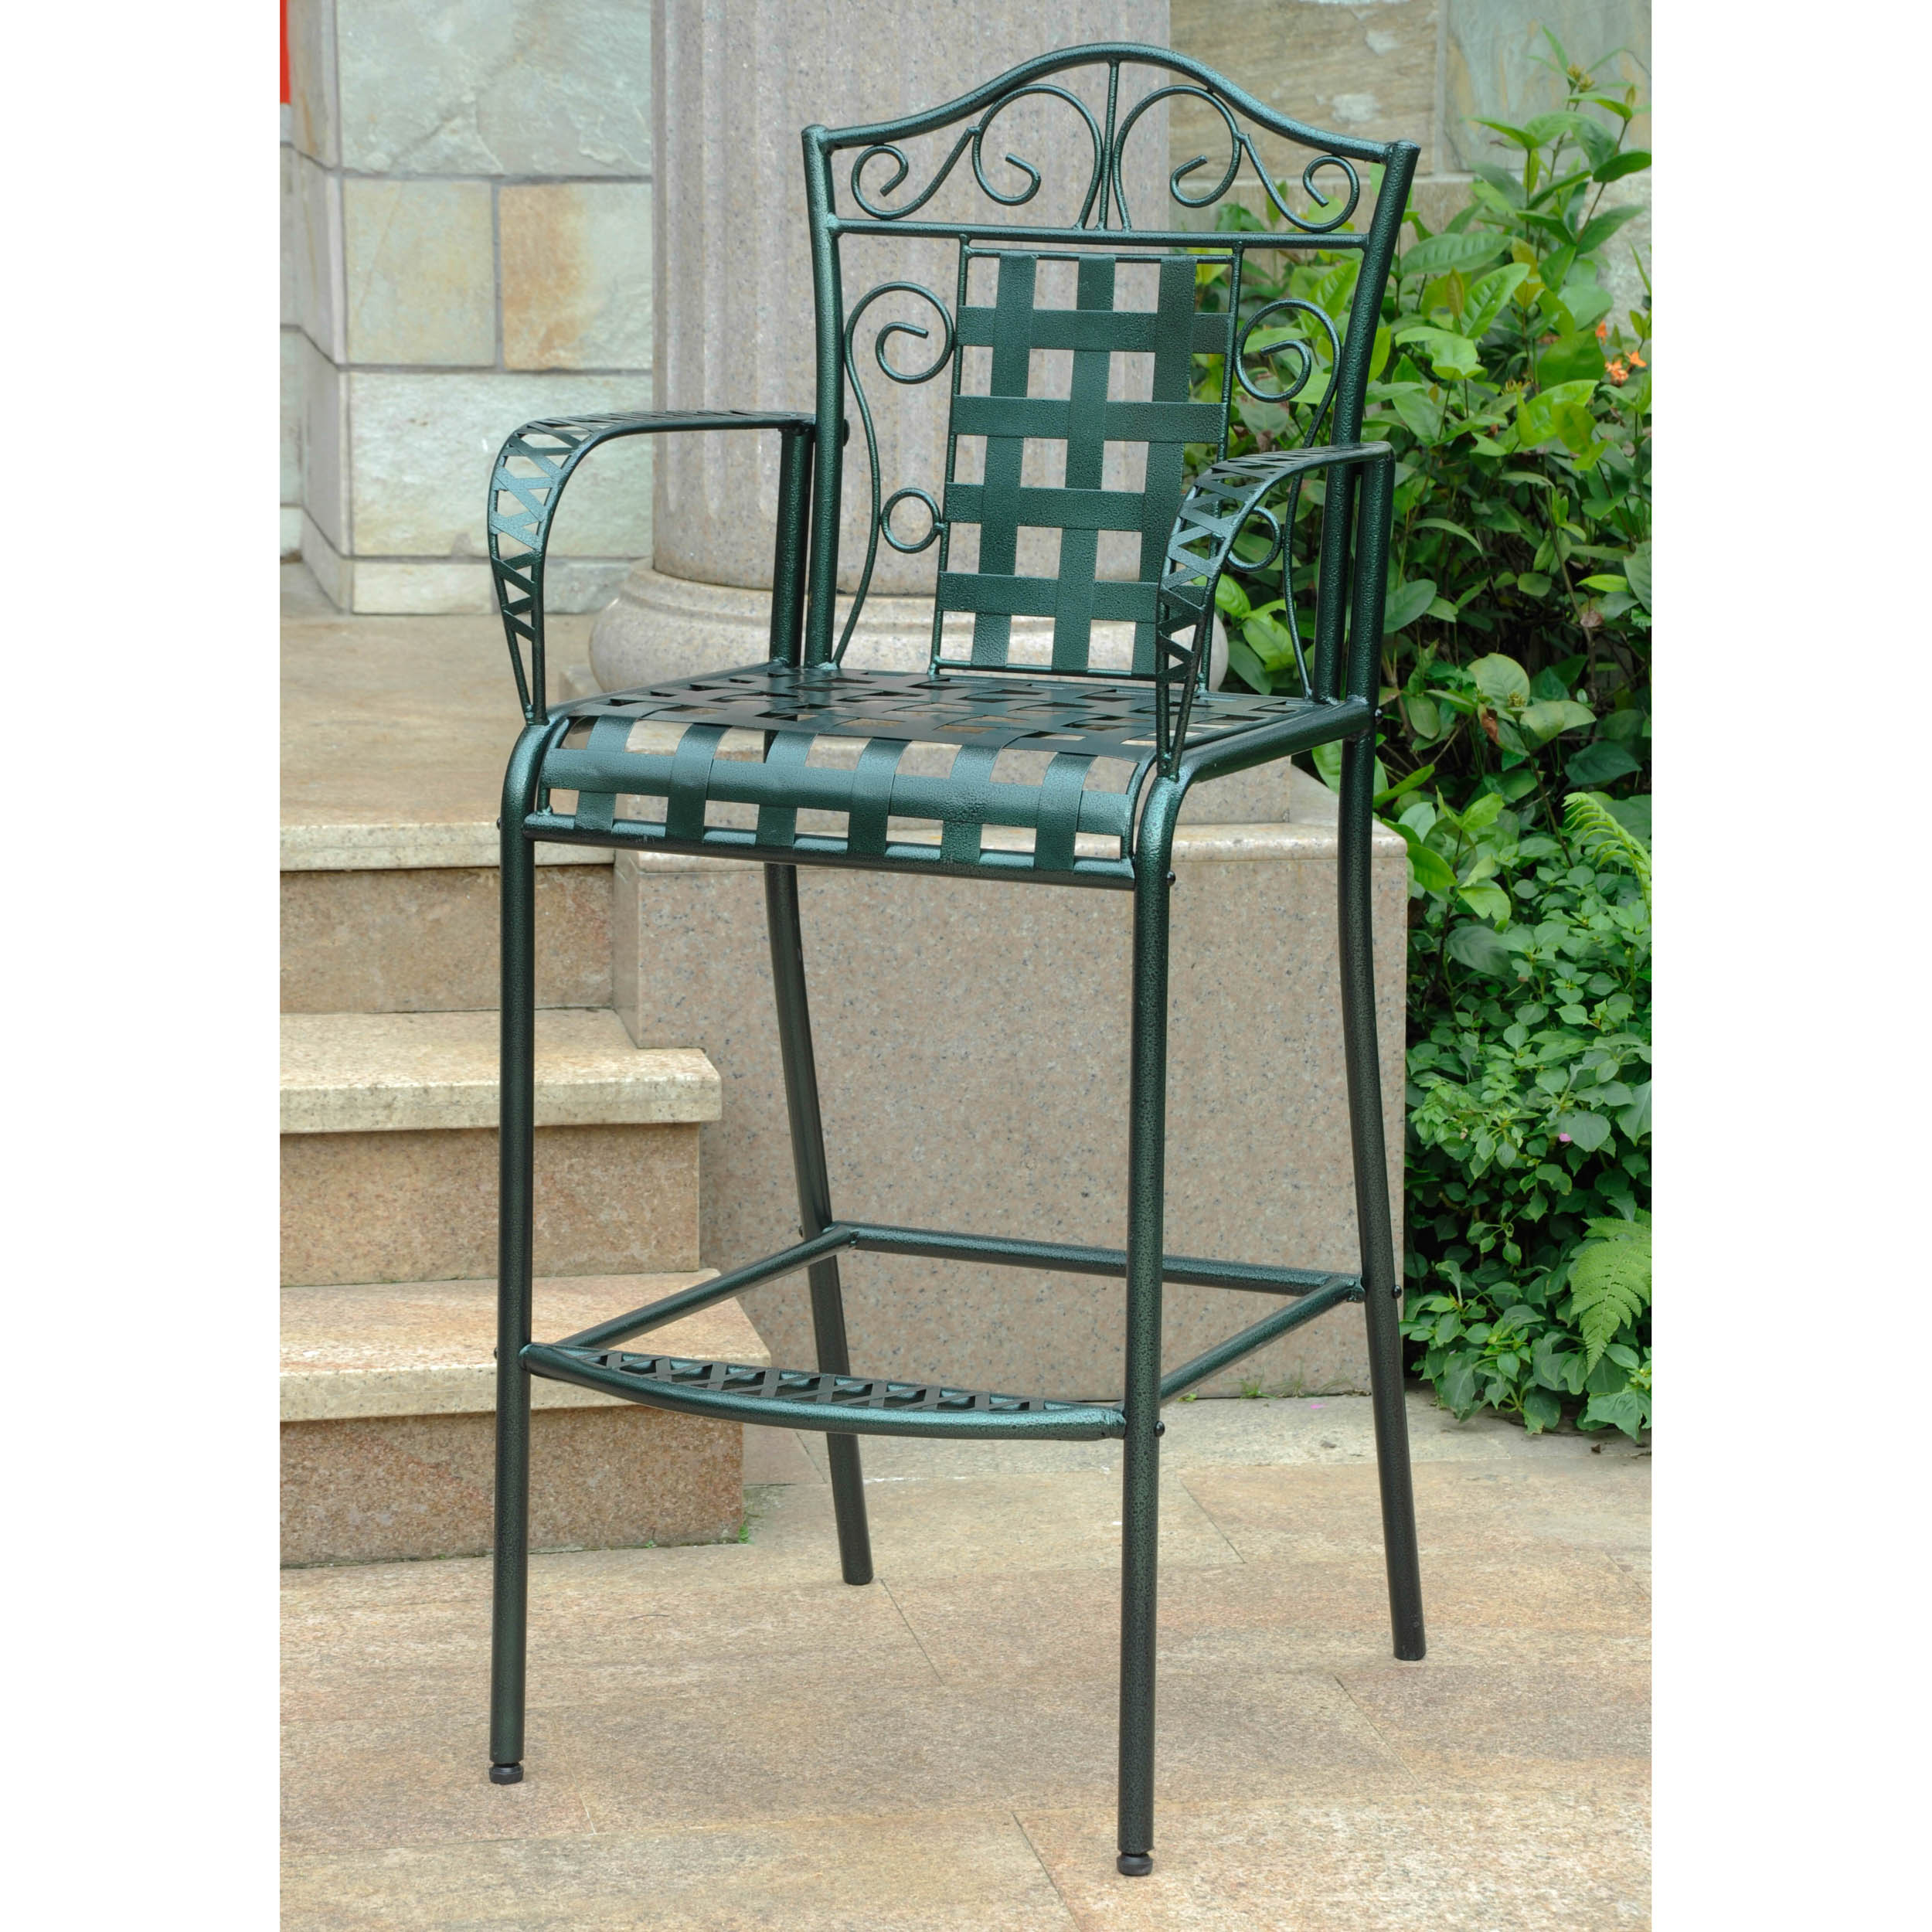 Mandalay Iron Bar-height Dining Chairs (Set of 2)